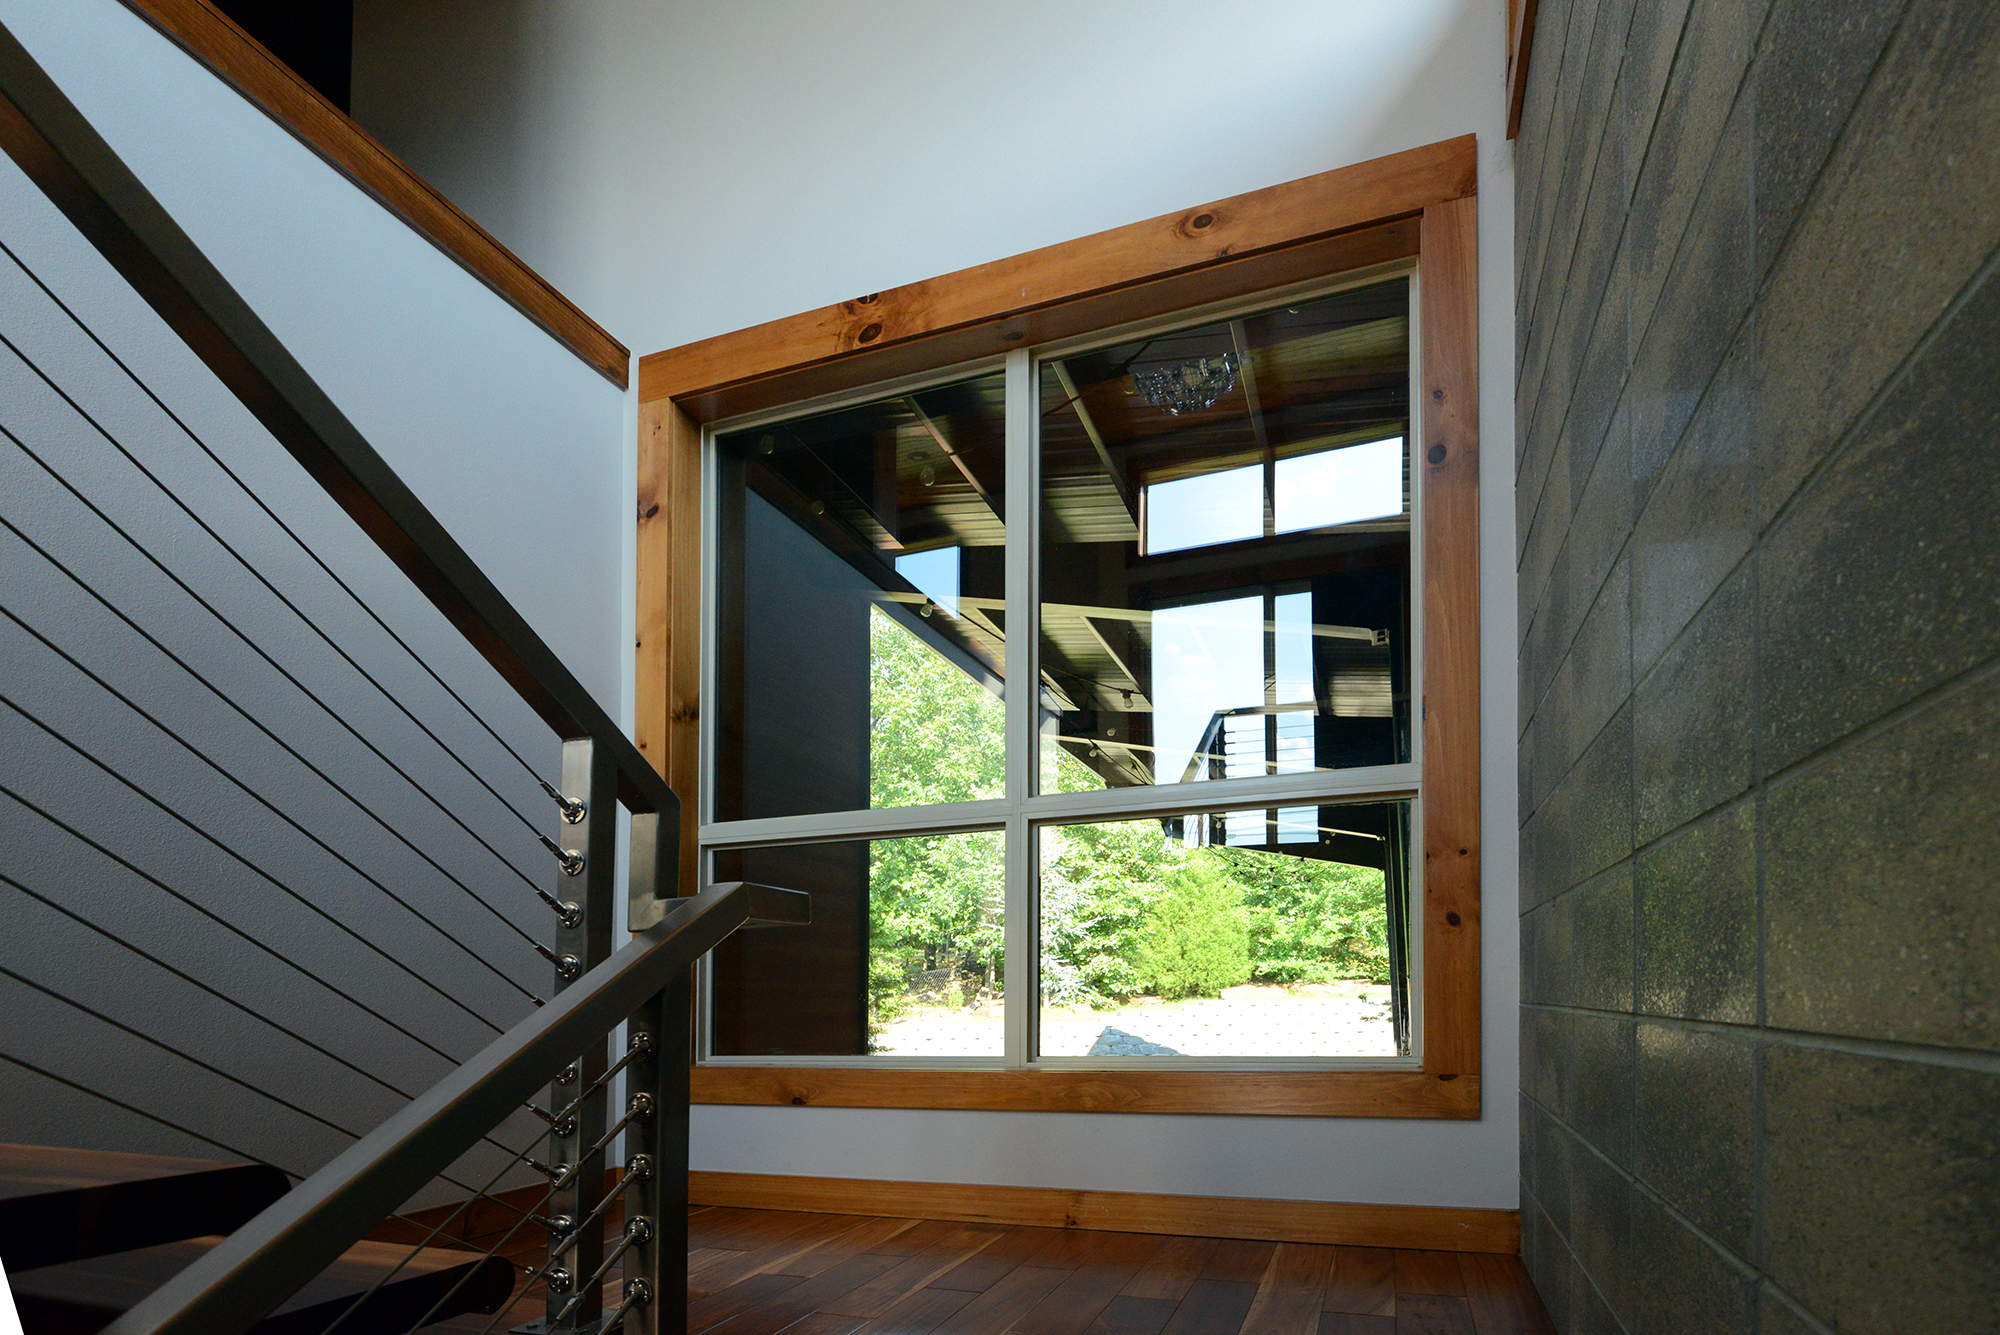 weatherbarr-Apex-picture-window-interior-modern.jpg